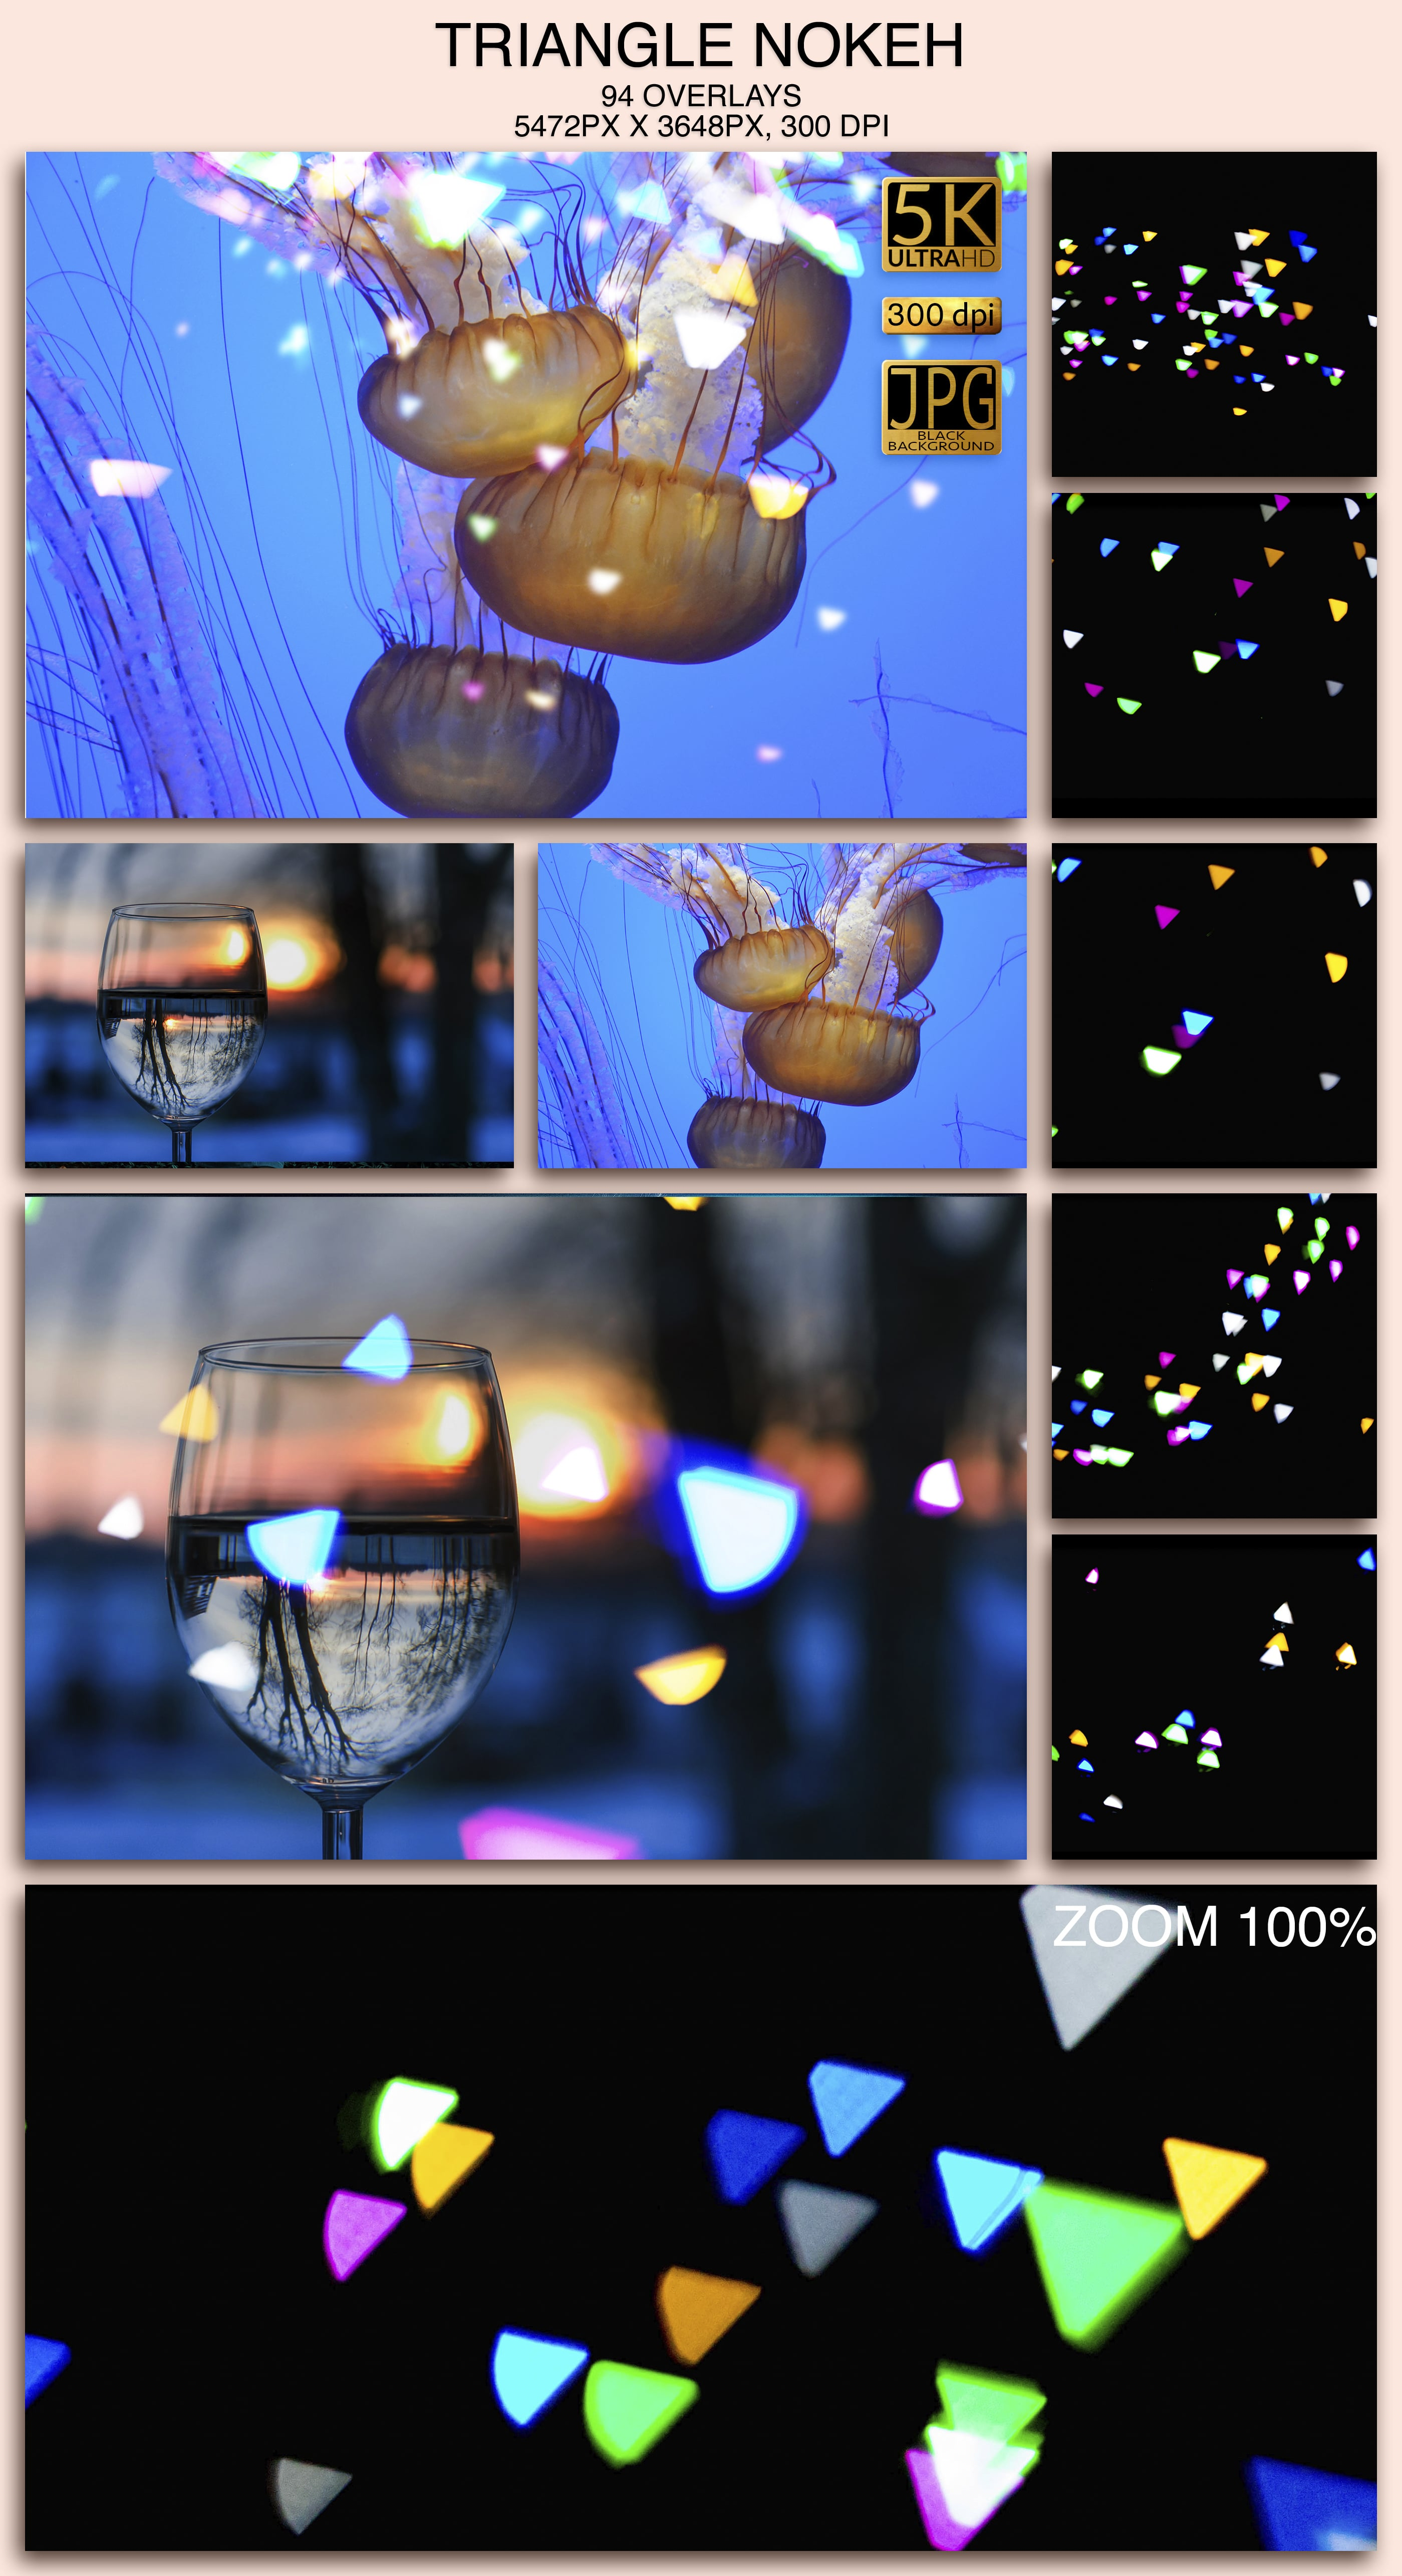 2006 Overlays Photoshop Bundle - TriangleBokeh Preview